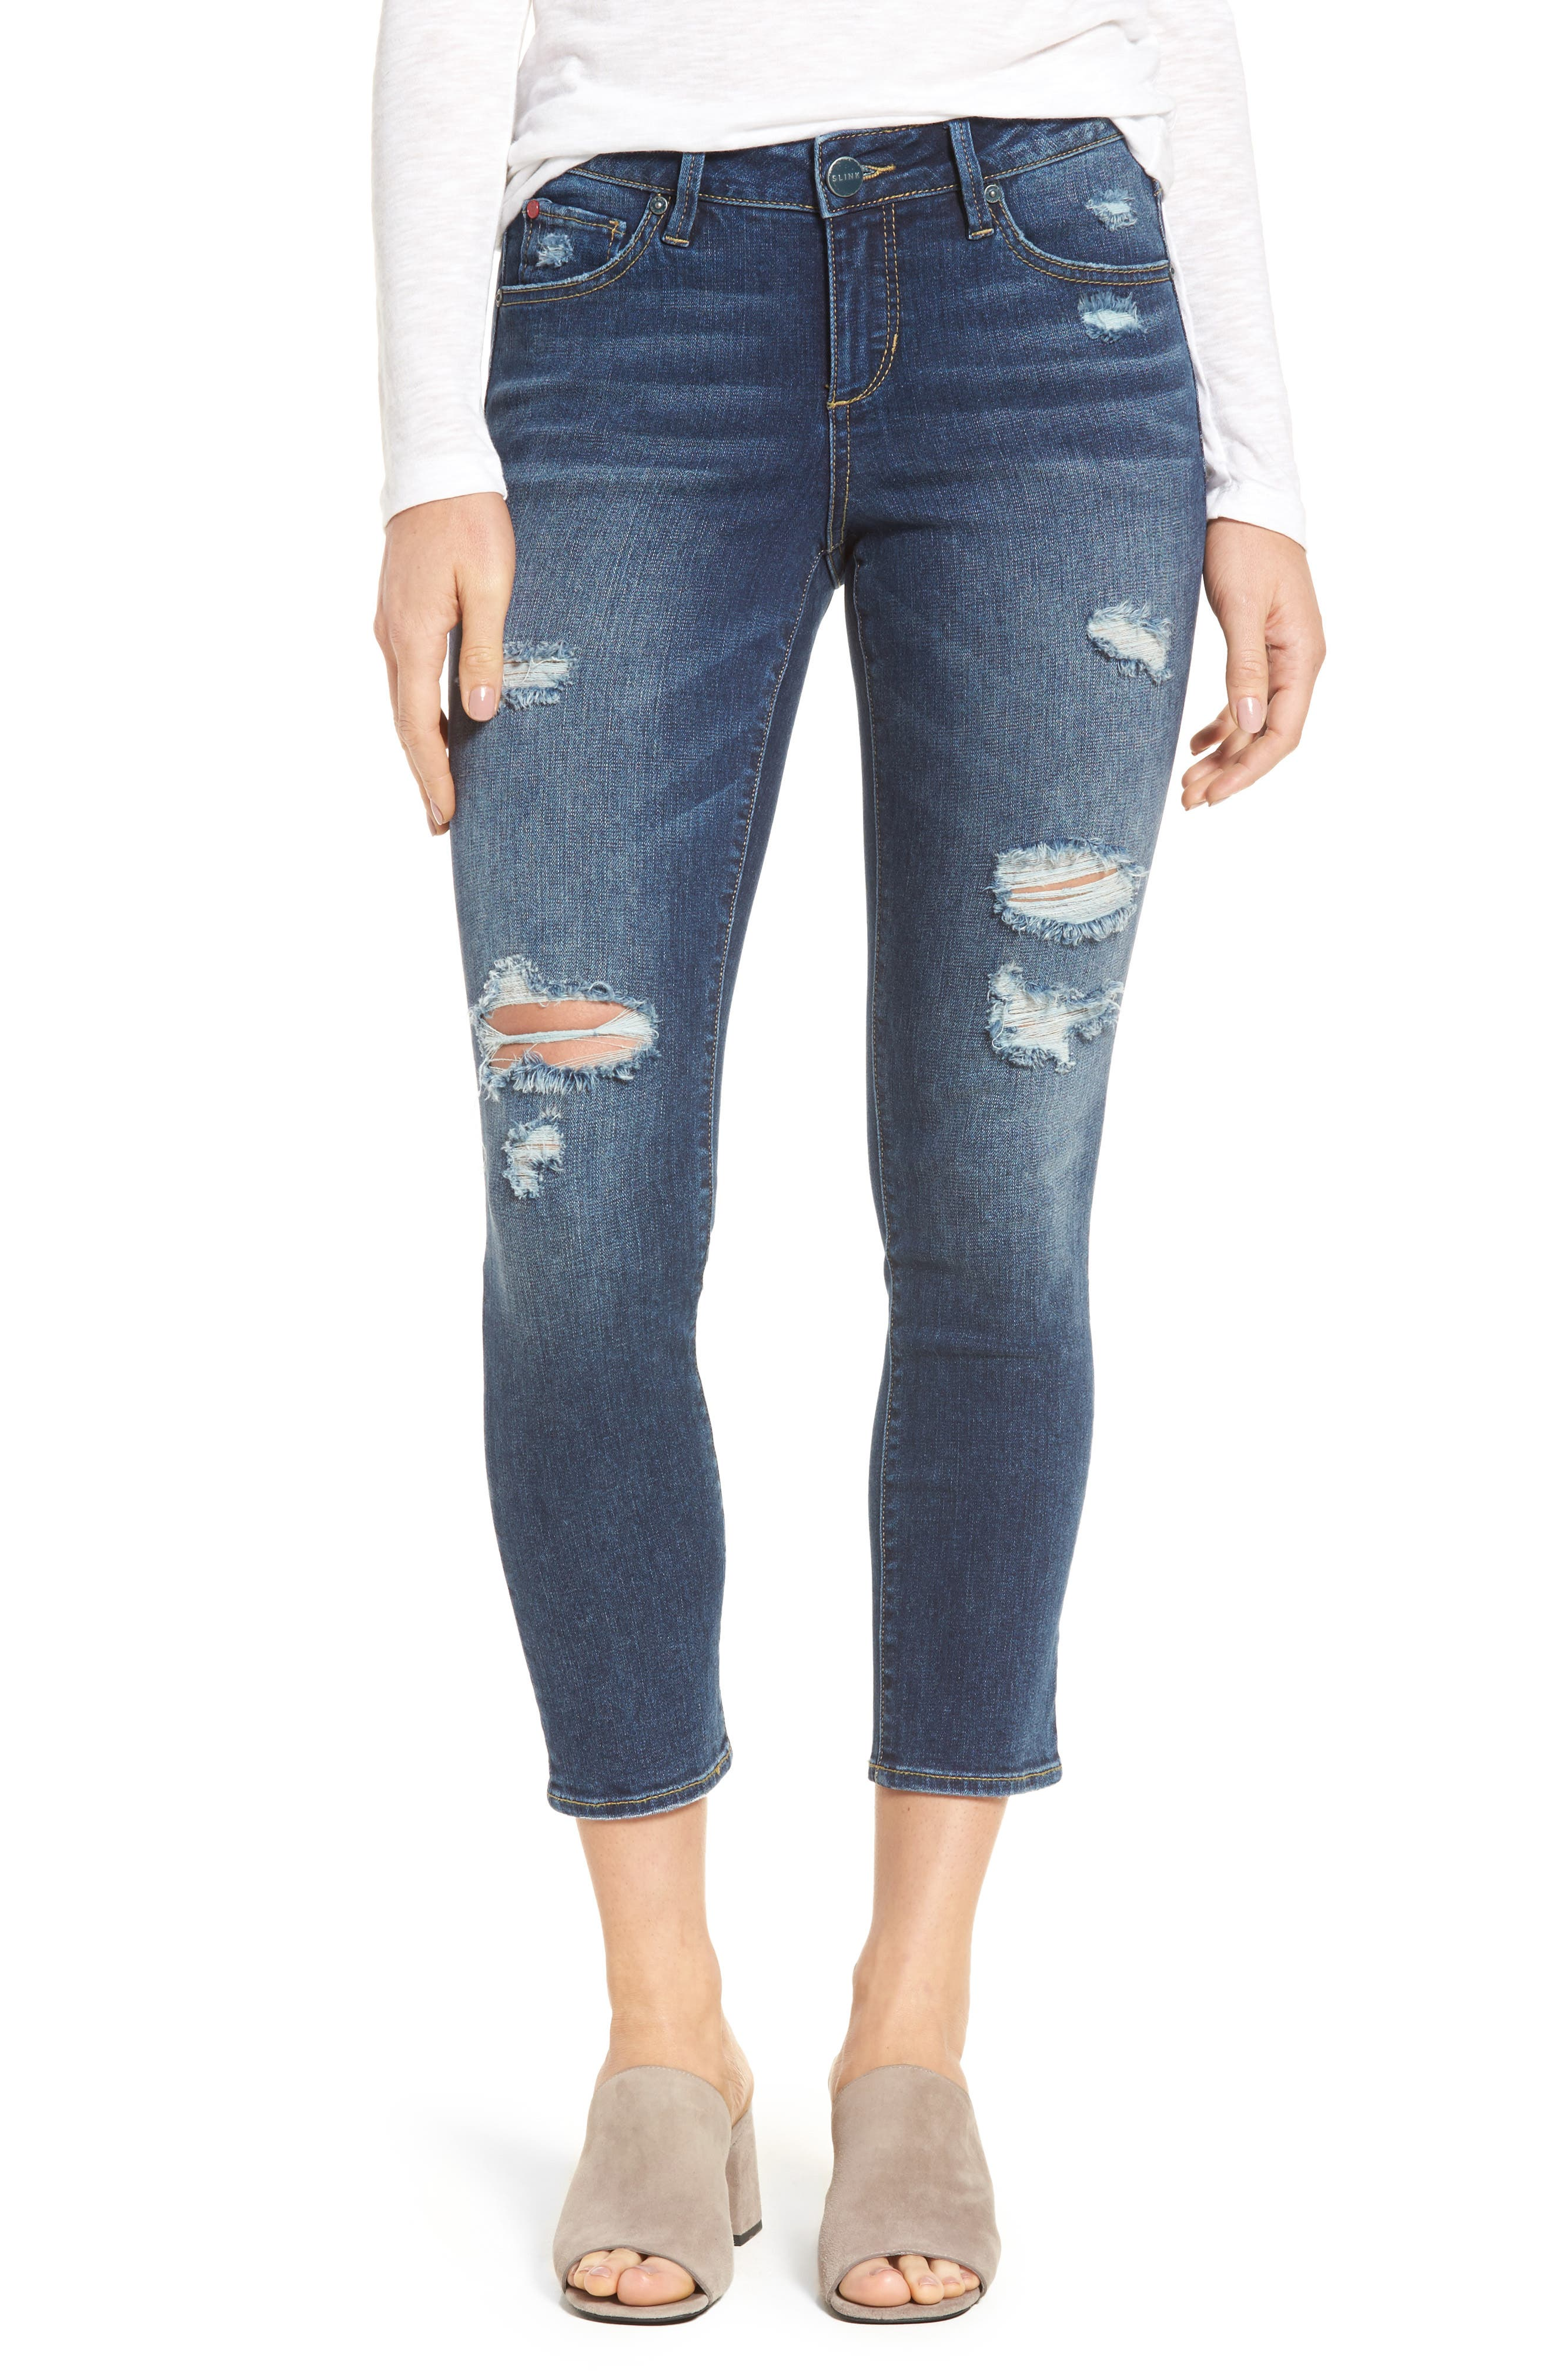 Alternate Image 1 Selected - SLINK Jeans Distressed Ankle Skinny Jeans (Lysa)